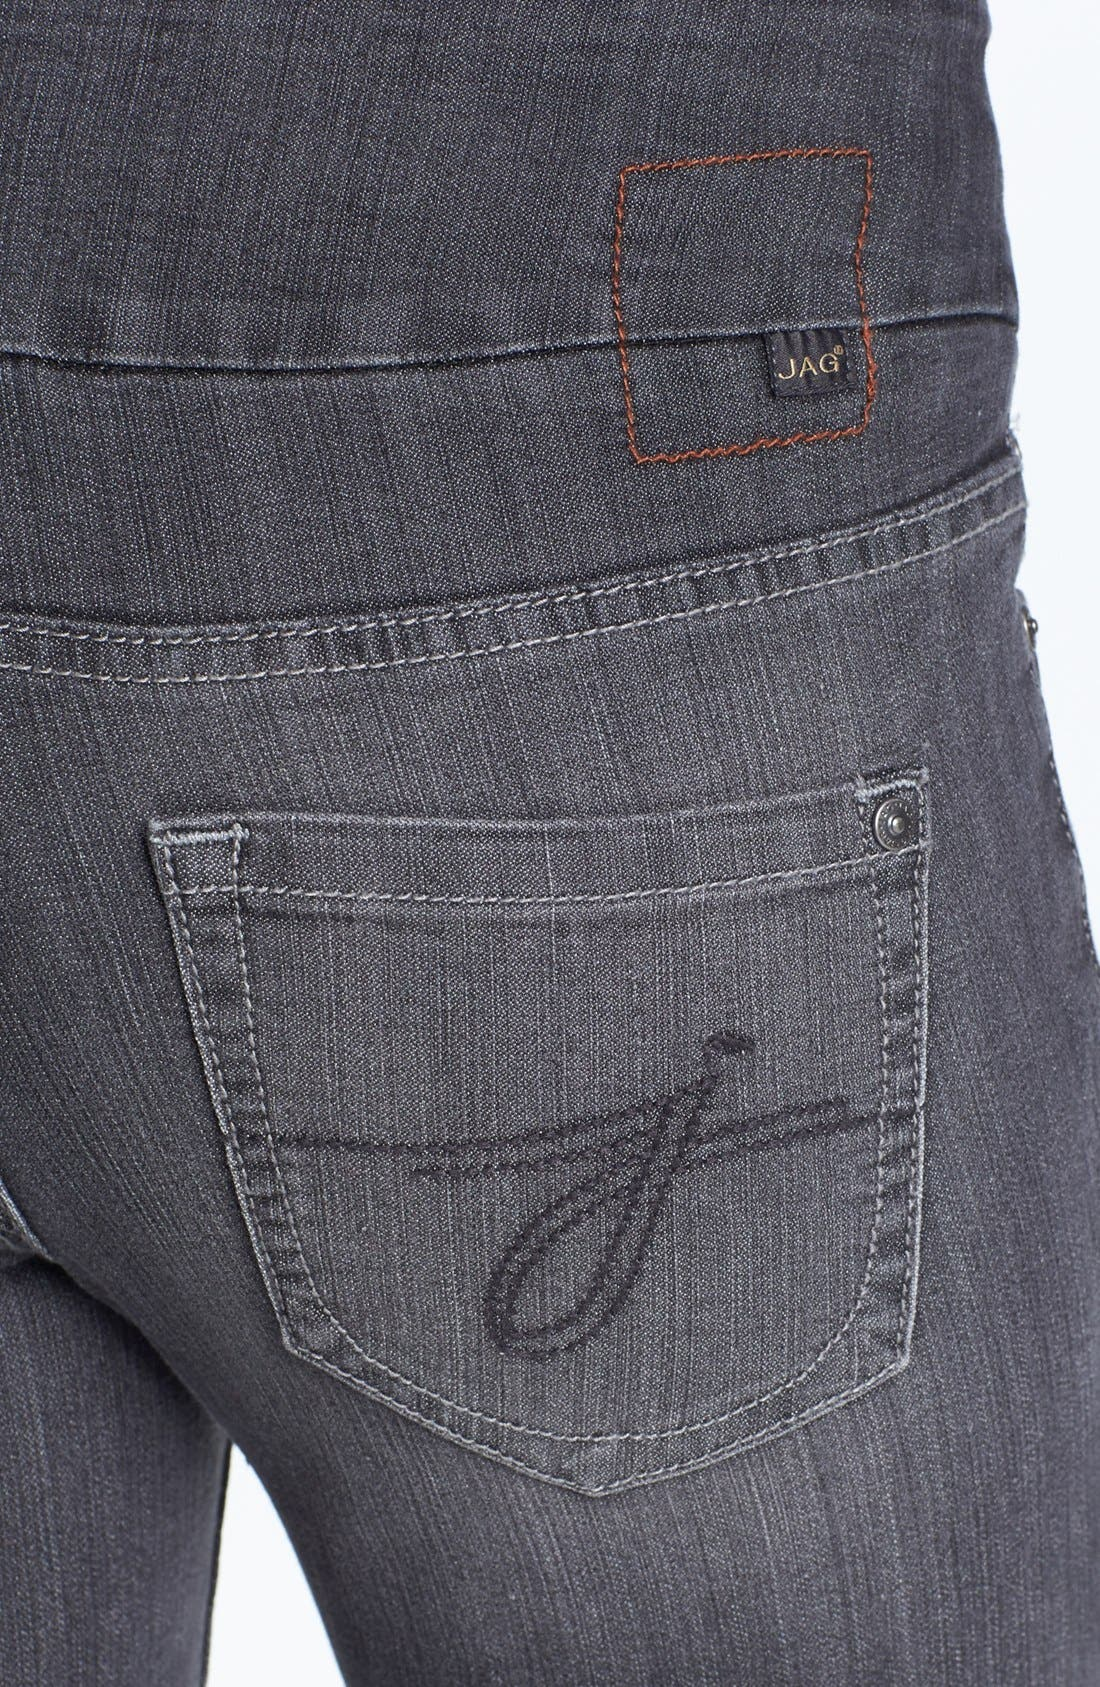 Alternate Image 3  - Jag Jeans 'Malia' Slim Leg Stretch Jeans (Grey) (Petite)